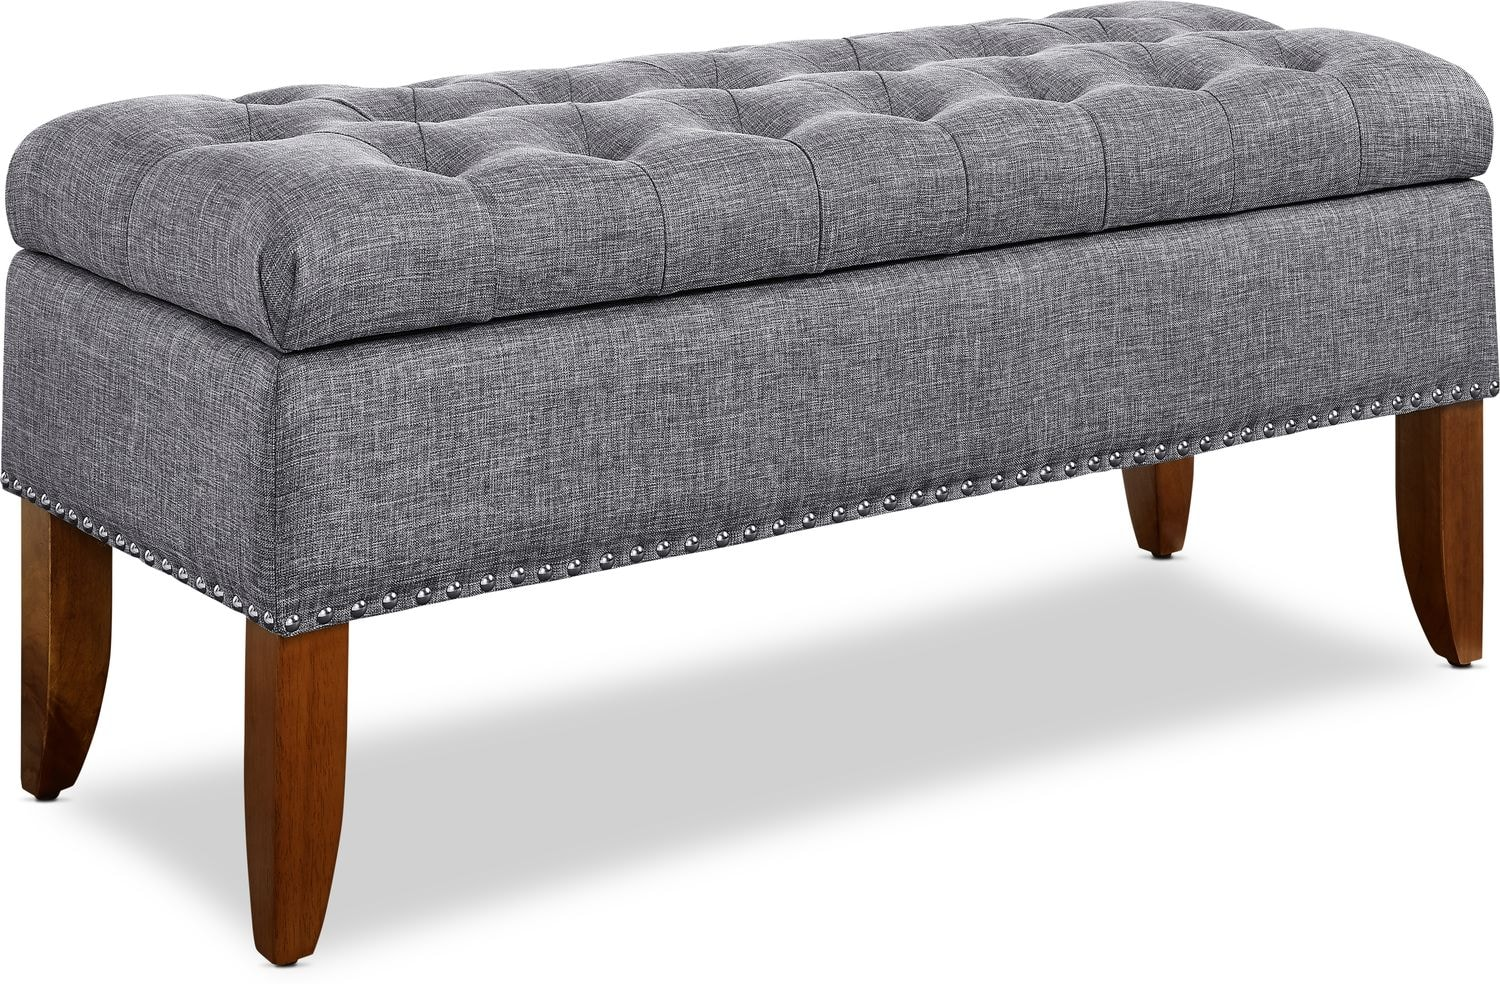 Bedroom Furniture - Harper Storage Bench